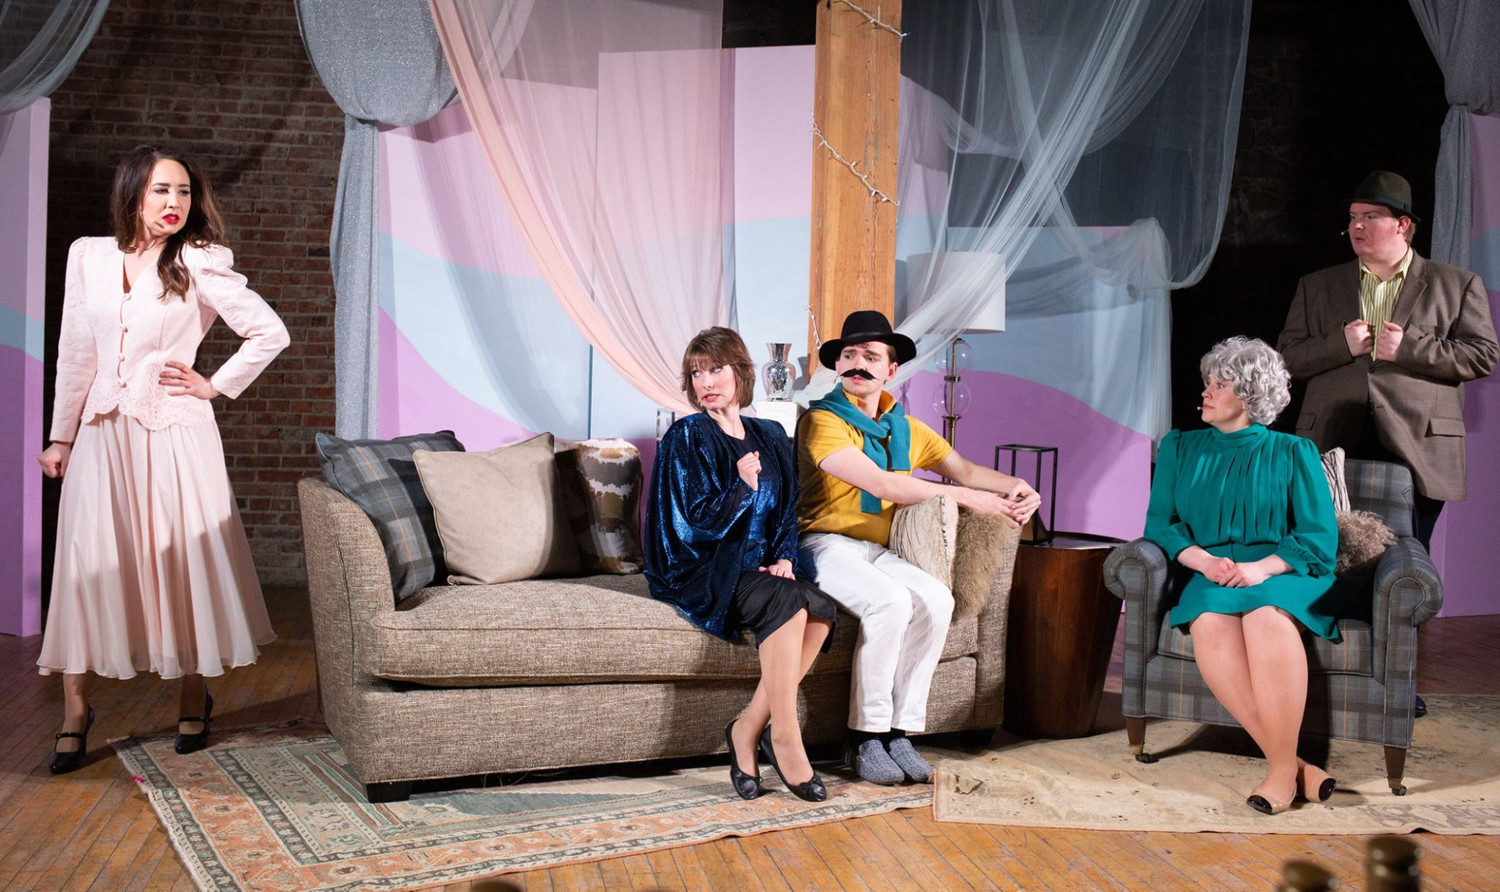 BWW REVIEW: Good Night Theatre Collective Brings Drama, Suspense, and Laughs with Premier of DAYTIME: A SOAP OPERA MUSICAL